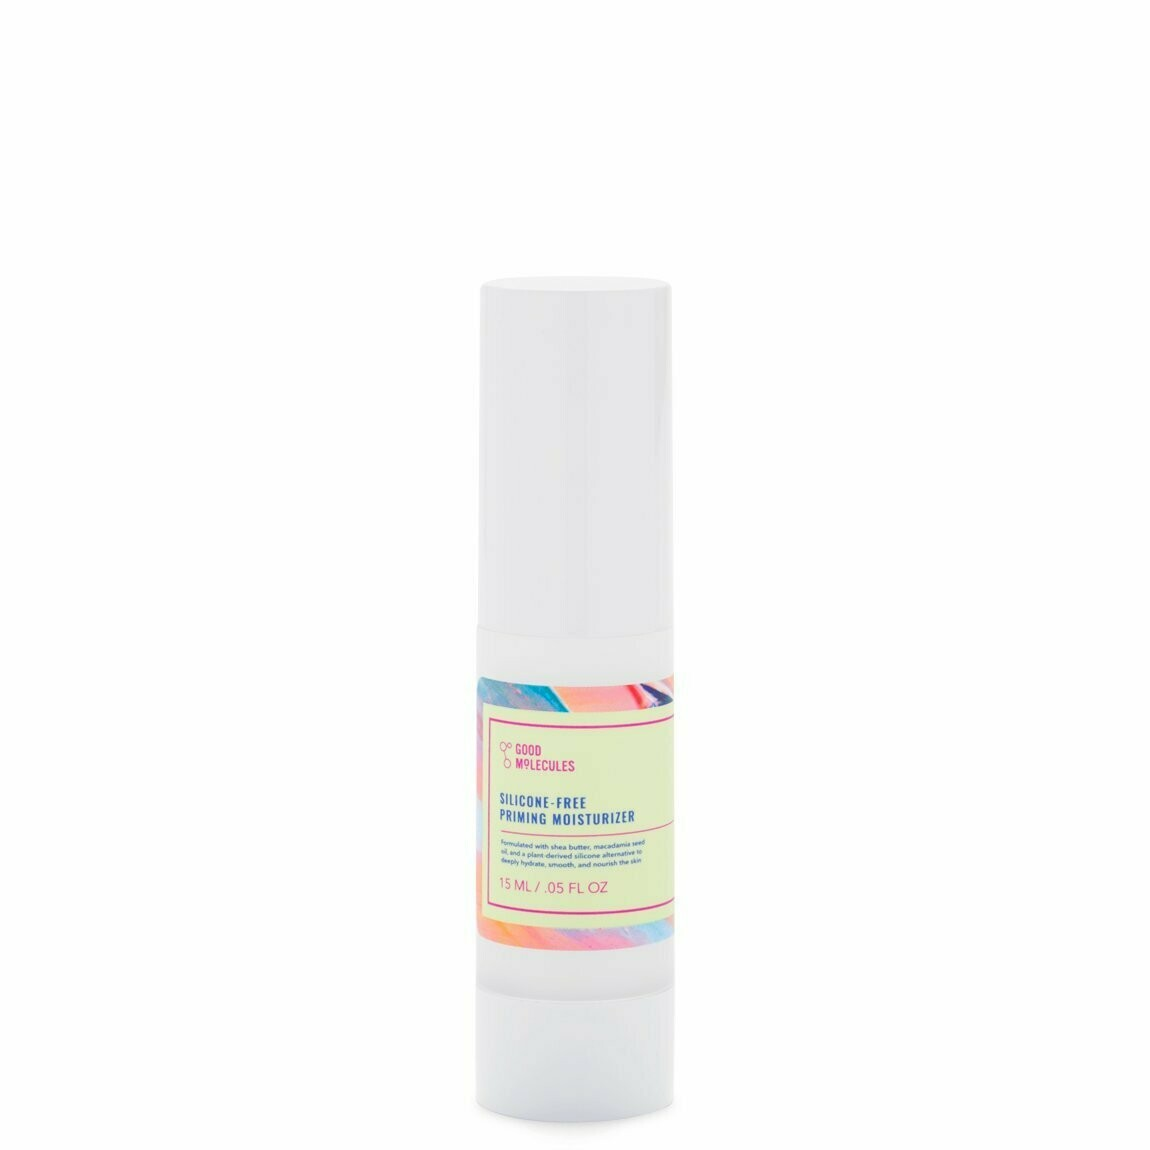 Silicone-Free Priming Moisturizer Travel Size - GOOD MOLECULES